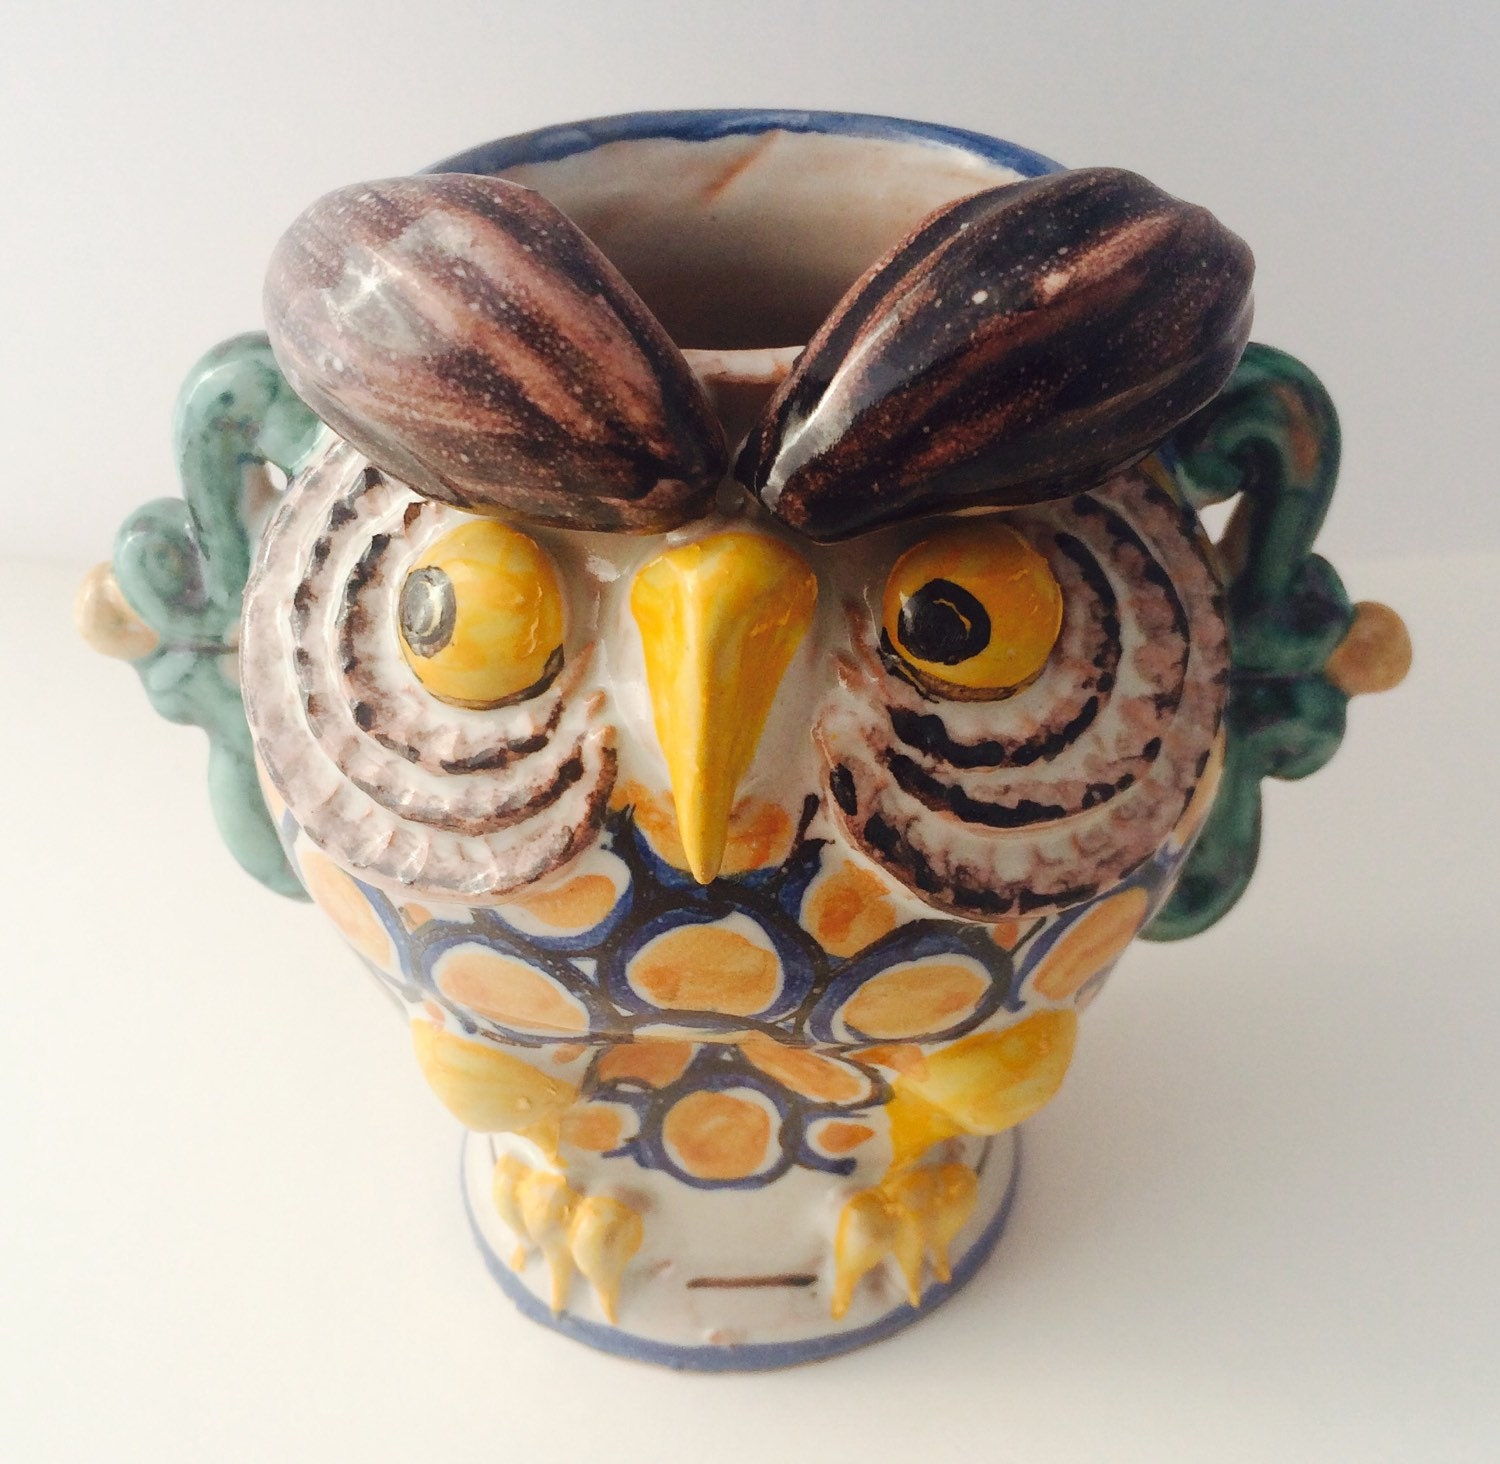 Ceramic Owl Vase Pen Holder Pencil Holder Toothbrush